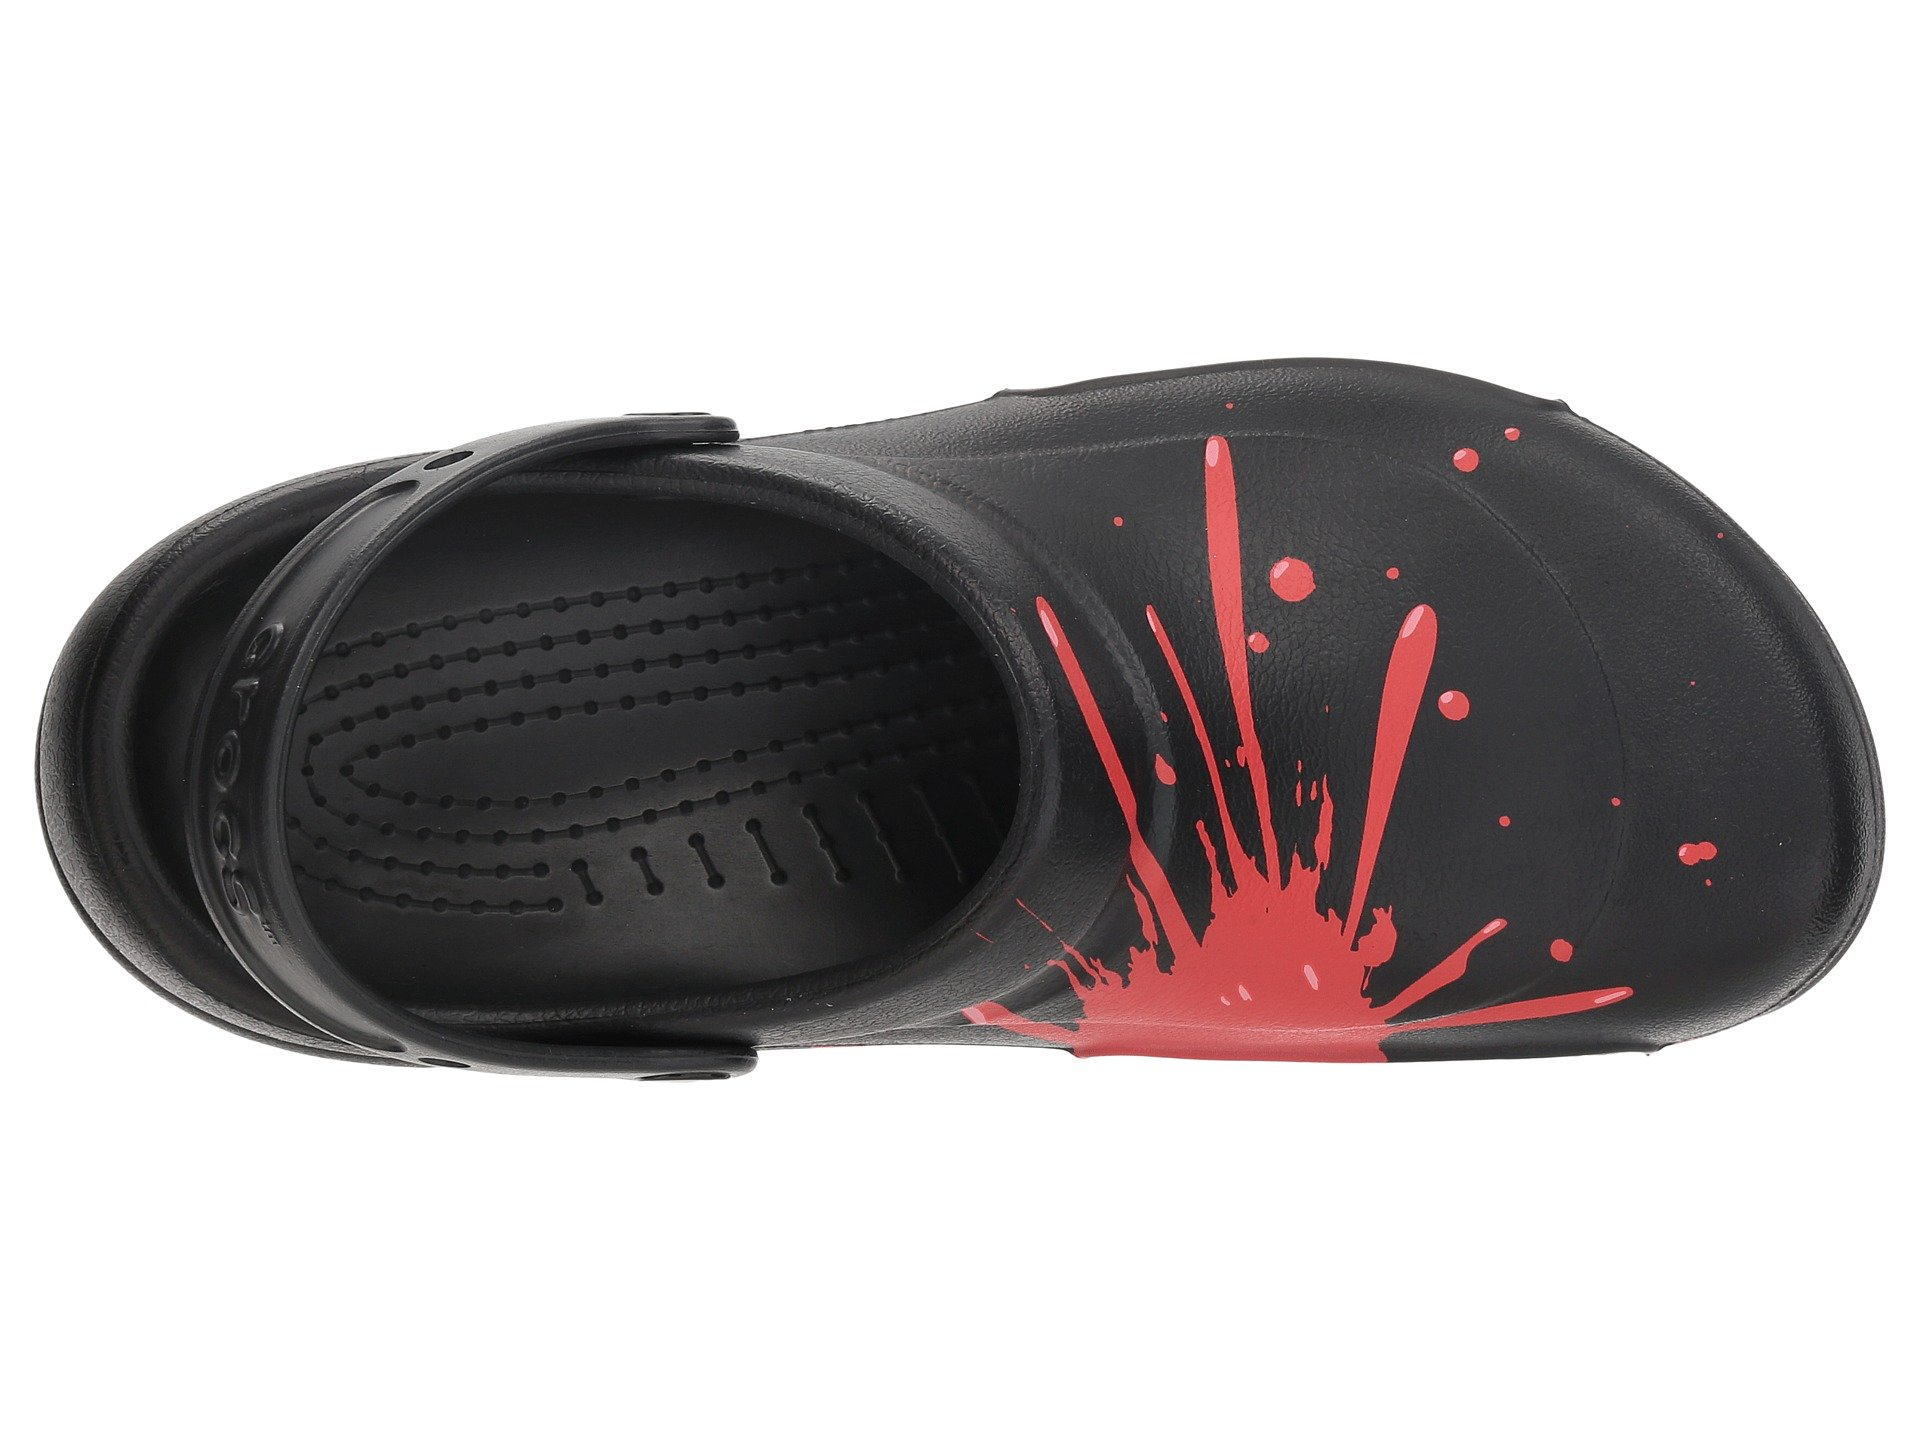 Crocs Graphic Black Bistro pepper Clog fY7YwT6q